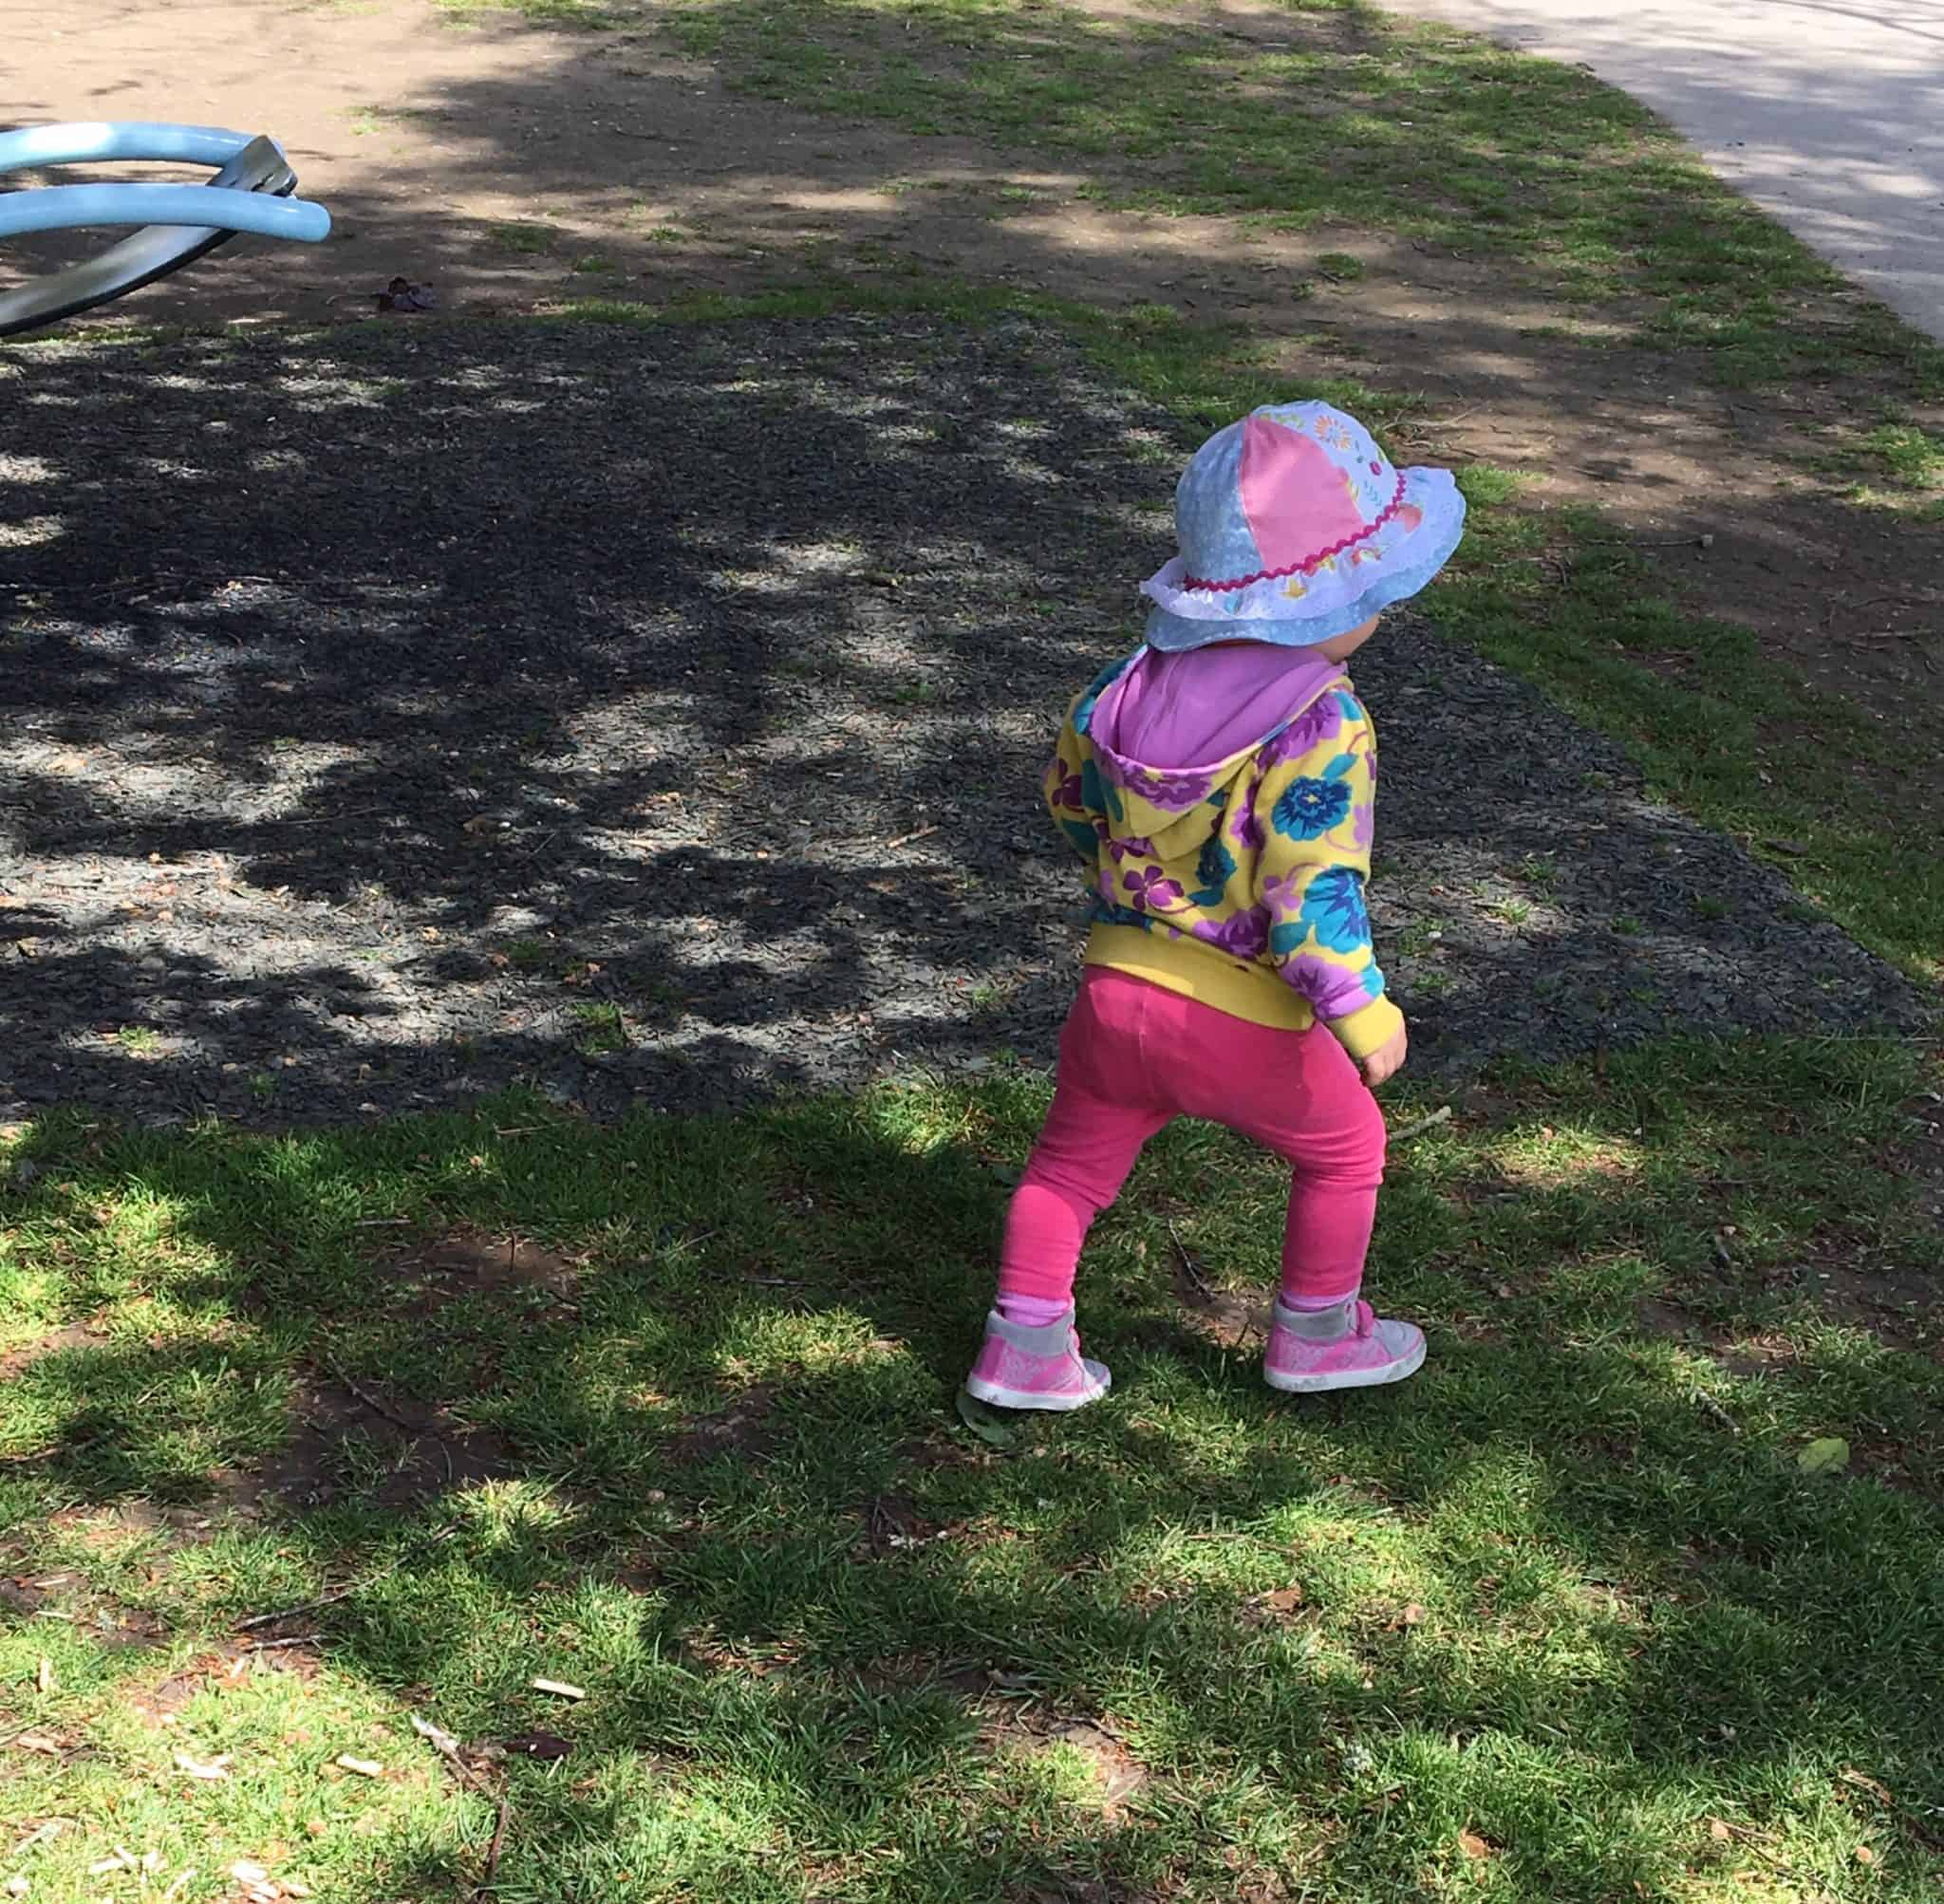 Baby girl at the park